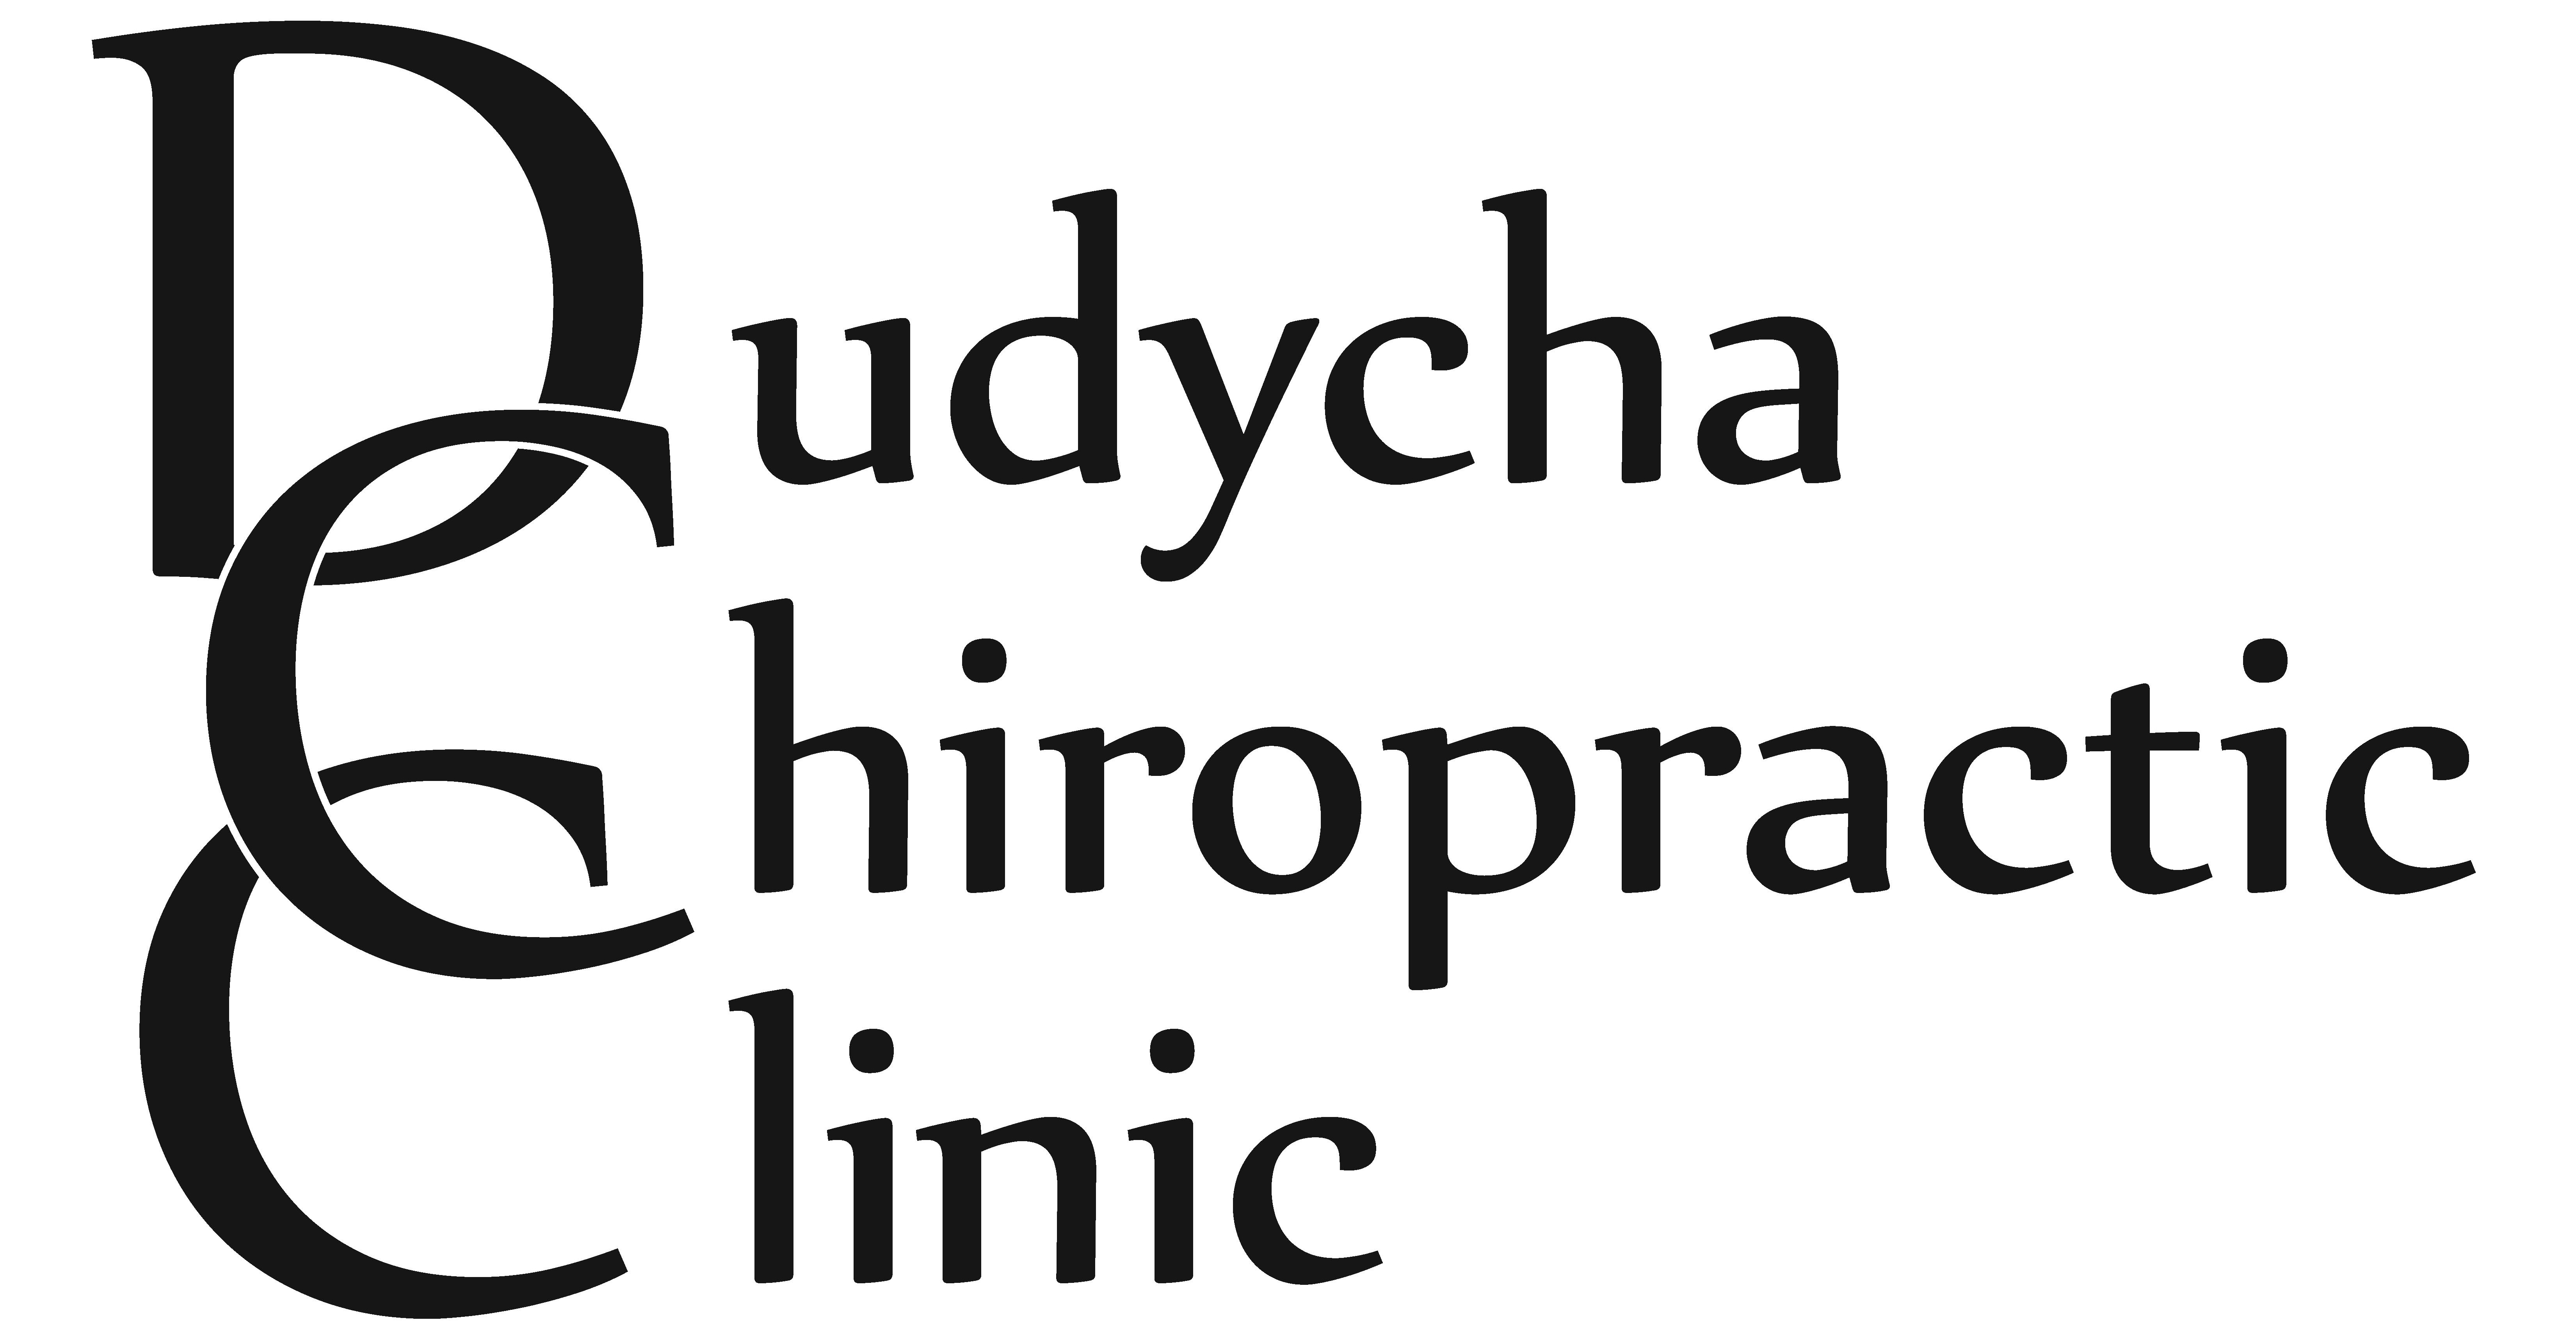 Dudycha Chiropractic Clinic Logo